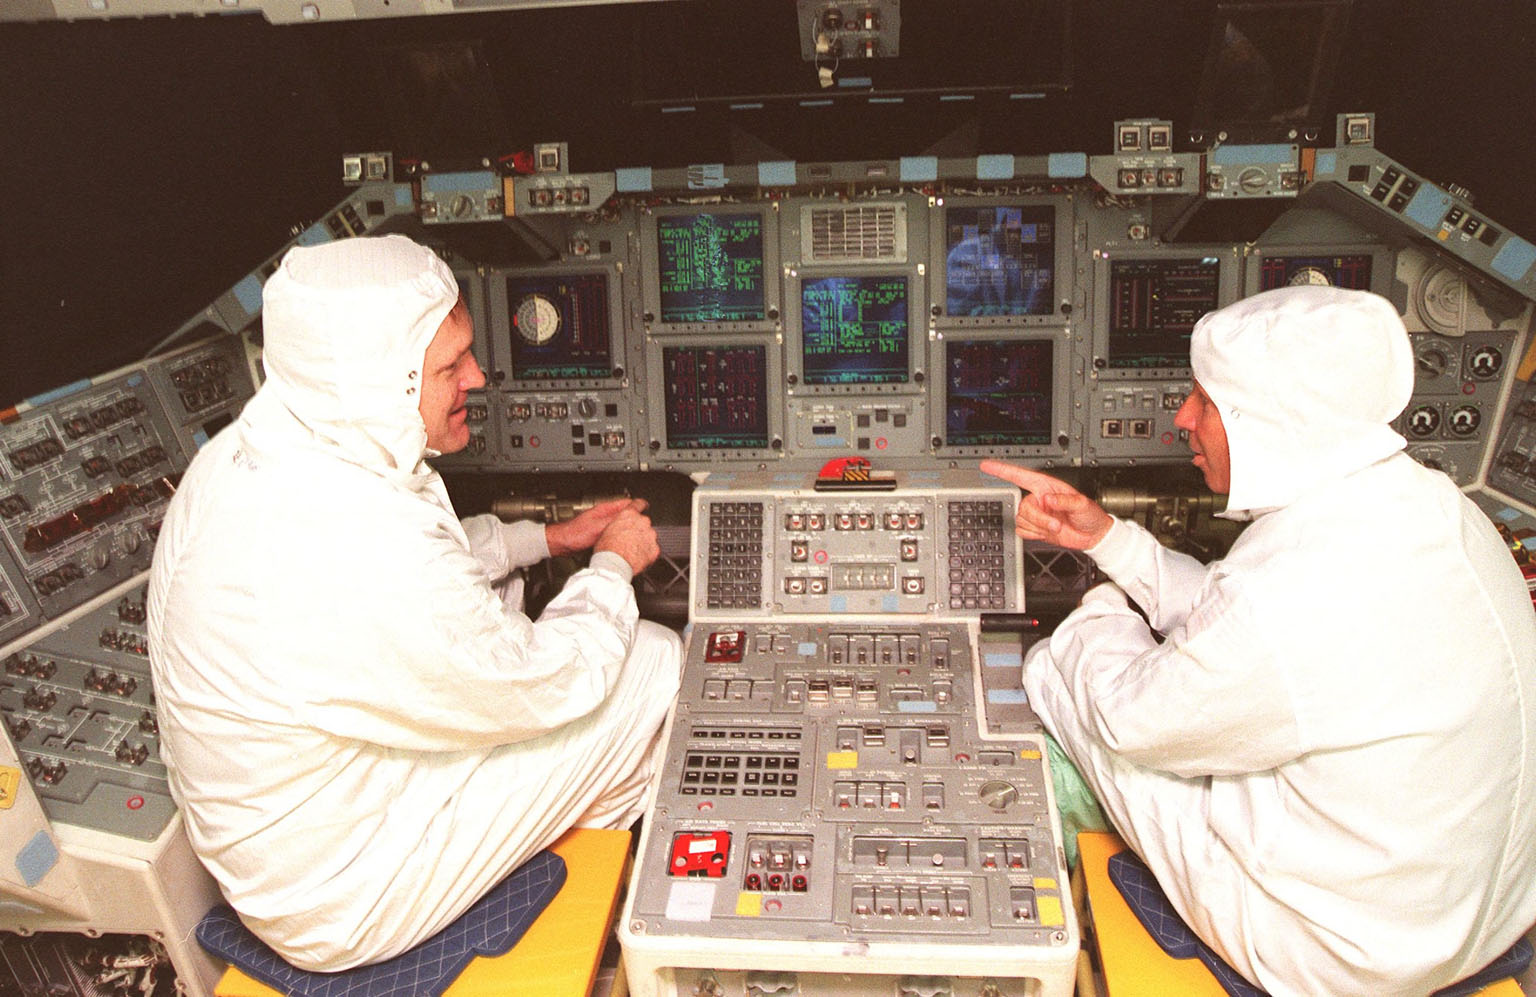 STS-101 Commander James Halsell (left) and STS-98 Commander Ken Cockrell (right) look over the recently installed Multifunction Electronic Display Subsystem (MEDS) in the cockpit of the orbiter Atlantis, which each will command on their upcoming respective missions. The new full-color, flat panel MEDS improves crew/orbiter interaction with easy-to-read, graphic portrayals of key flight indicators like attitude display and mach speed. The installation makes Atlantis the most modern orbiter in the fleet and equals the systems on current commercial jet airliners and military aircraft. . The first flight of the upgraded Atlantis is STS-101, scheduled for launch in December 1999; the second flight, STS-98, is scheduled for launch in April 2000